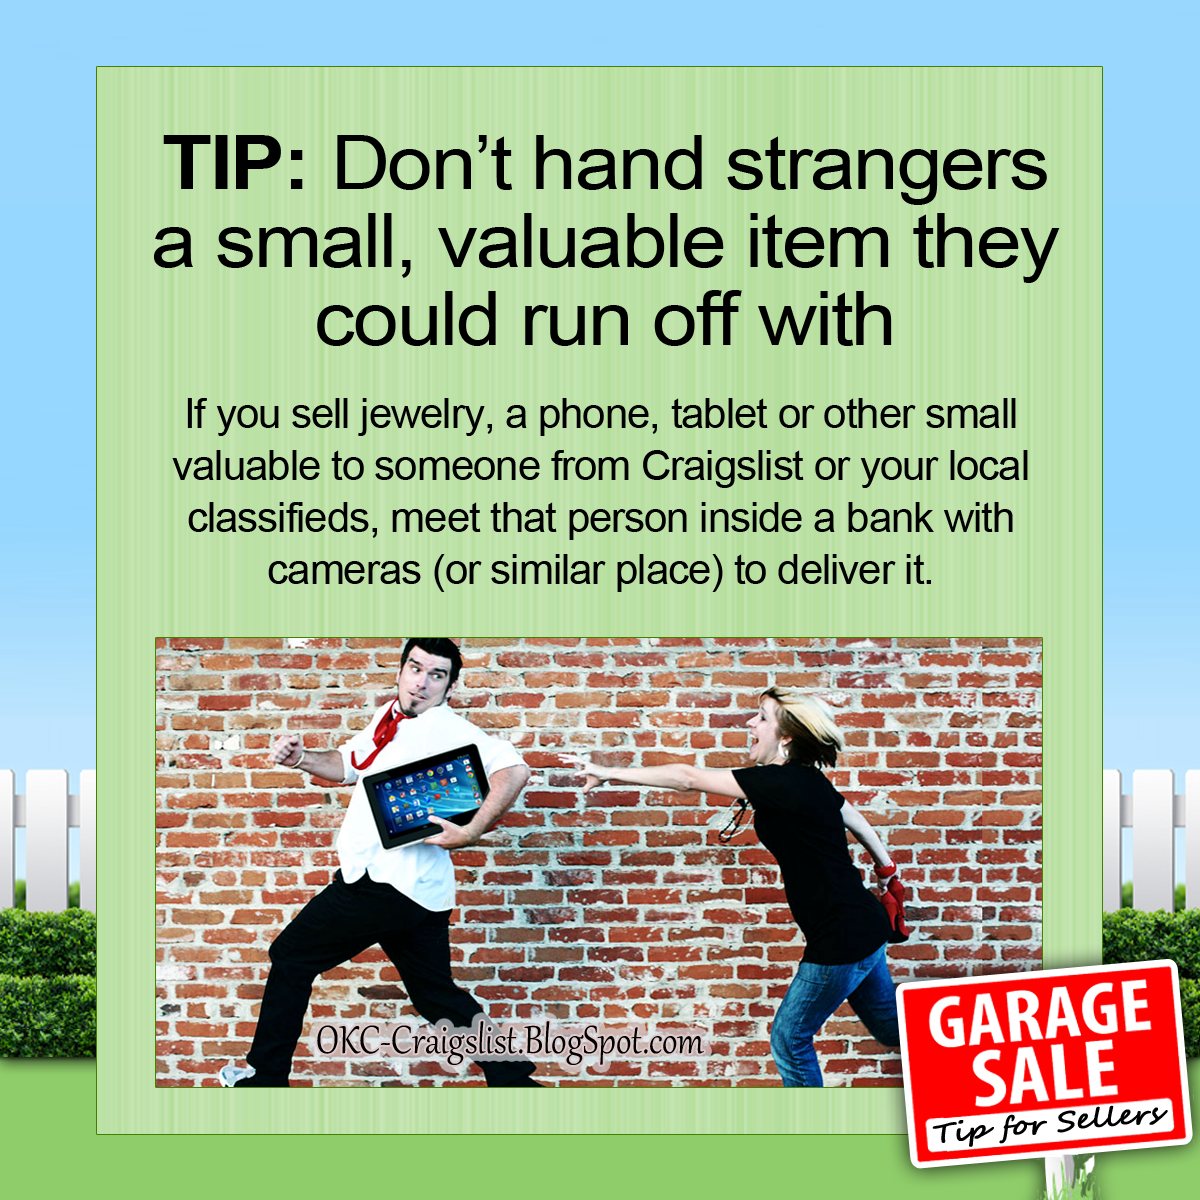 CRAIGSLIST TIP: Stop a Craigslist Thief in His Tracks | OKC Craigslist Garage Sale